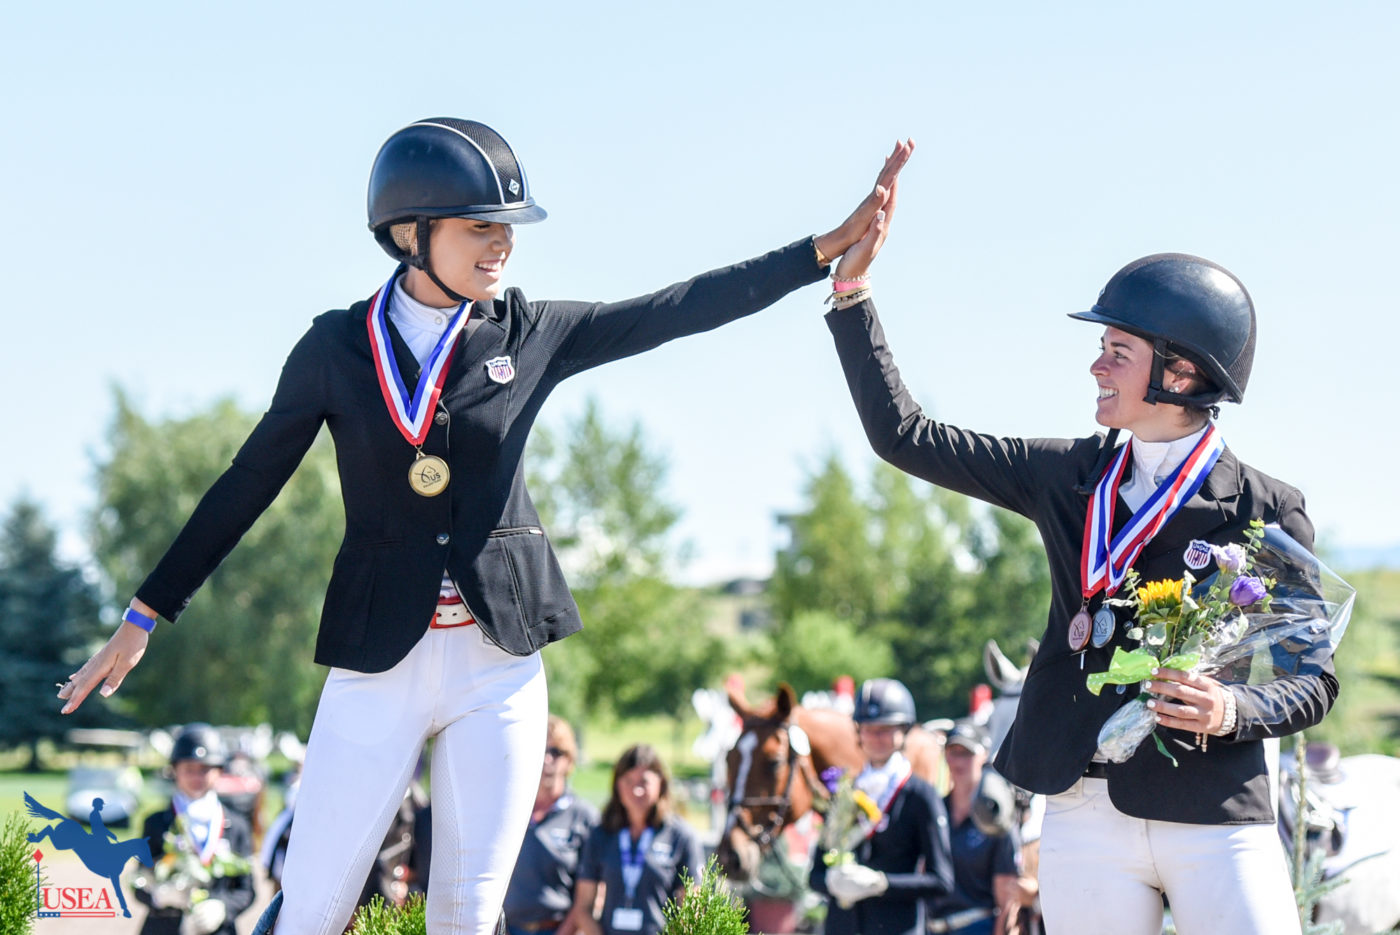 Eventers are the best competitors – always the first to congratulate each other on a job well done. USEA/Leslie Mintz Photo.